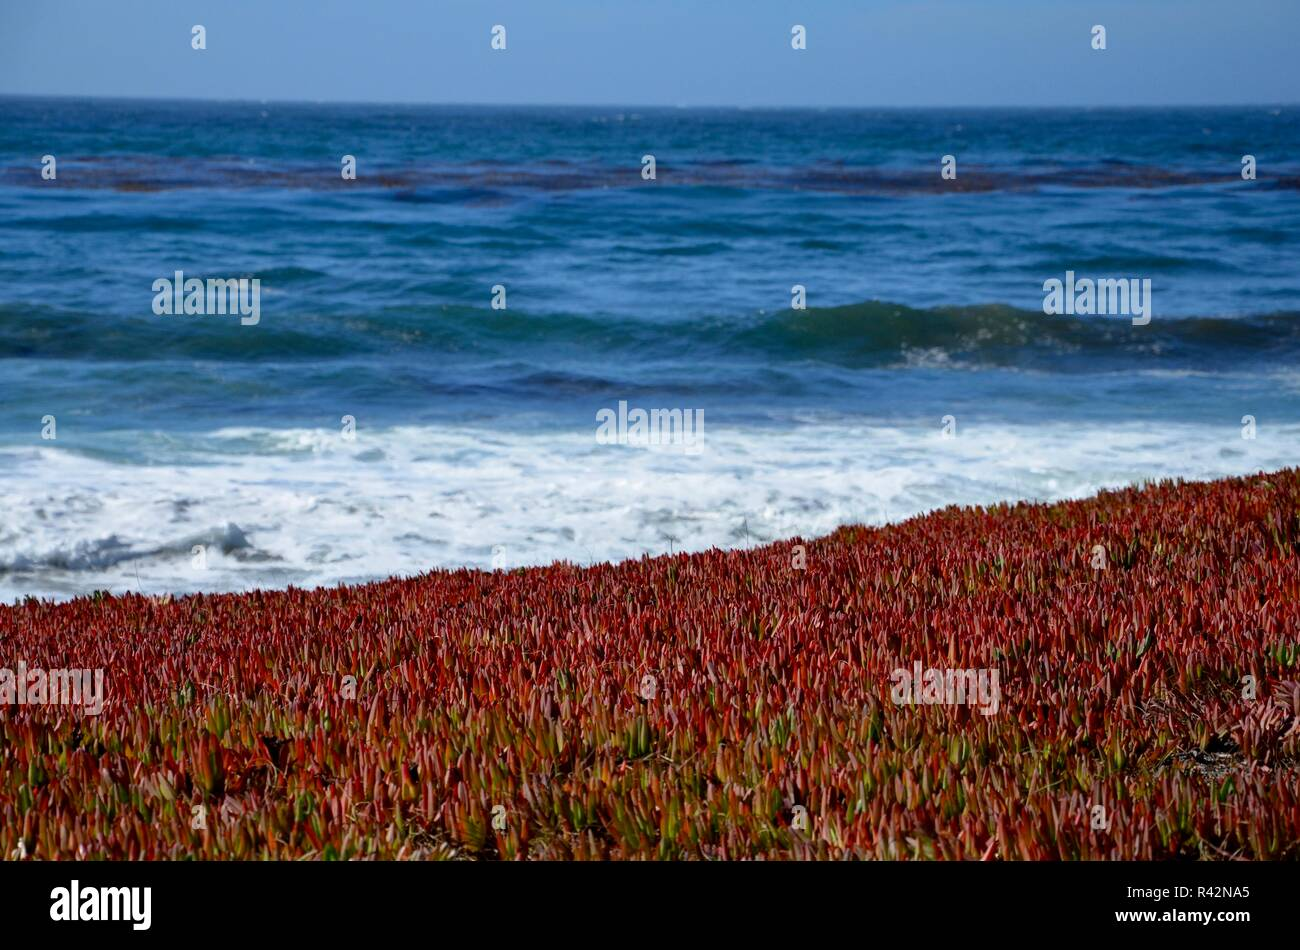 Monterey Peninsula near Pebble Beach in California, coast view towards the Pacific ocean, rocky coast and colorful plants on white sand, September - Stock Image